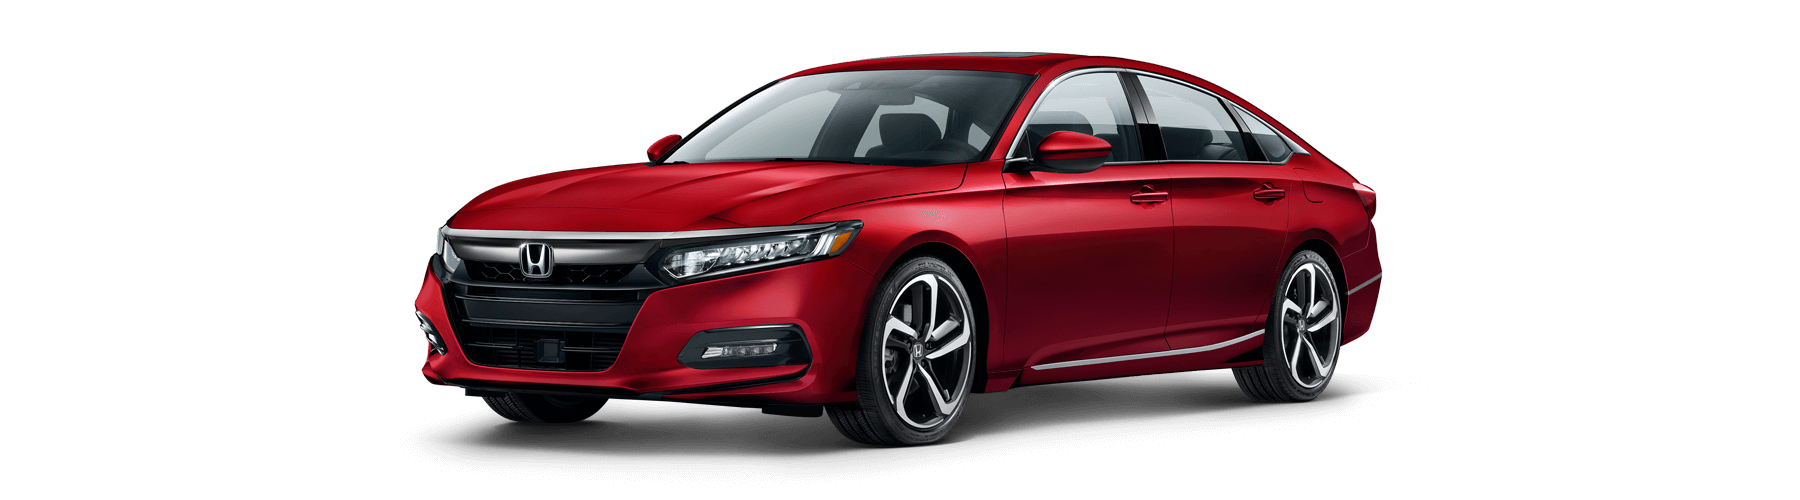 2019 Honda Accord Sedan Front Angle